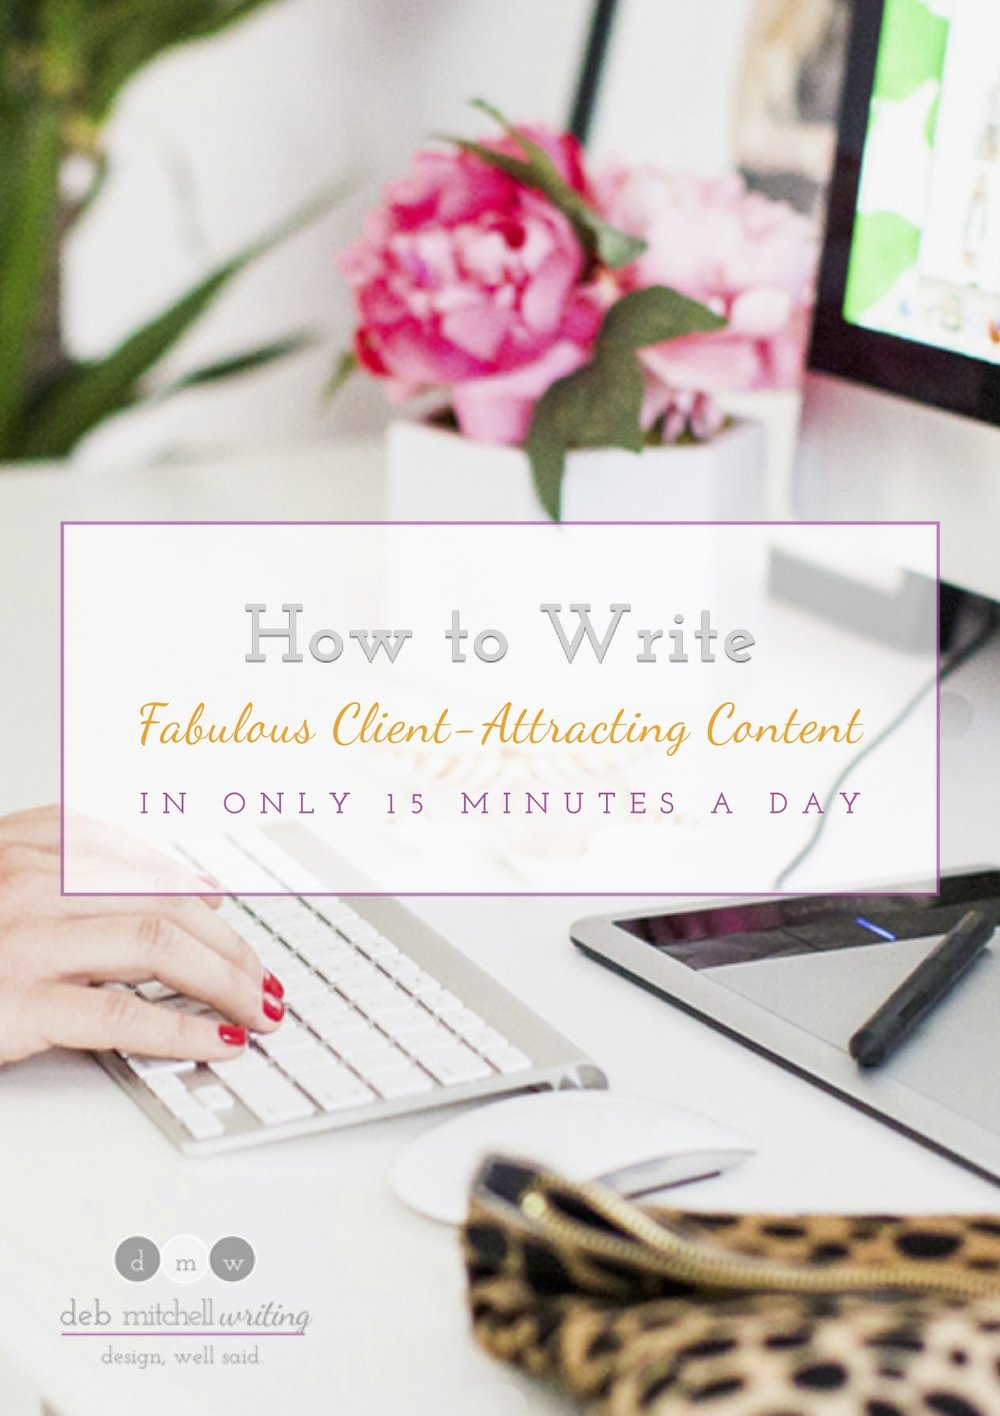 Deb Mitchell Writing - Marketing Writing for Interior Designers - How to Write Fabulous, Client-Attracting Content in 15 Minutes a Day